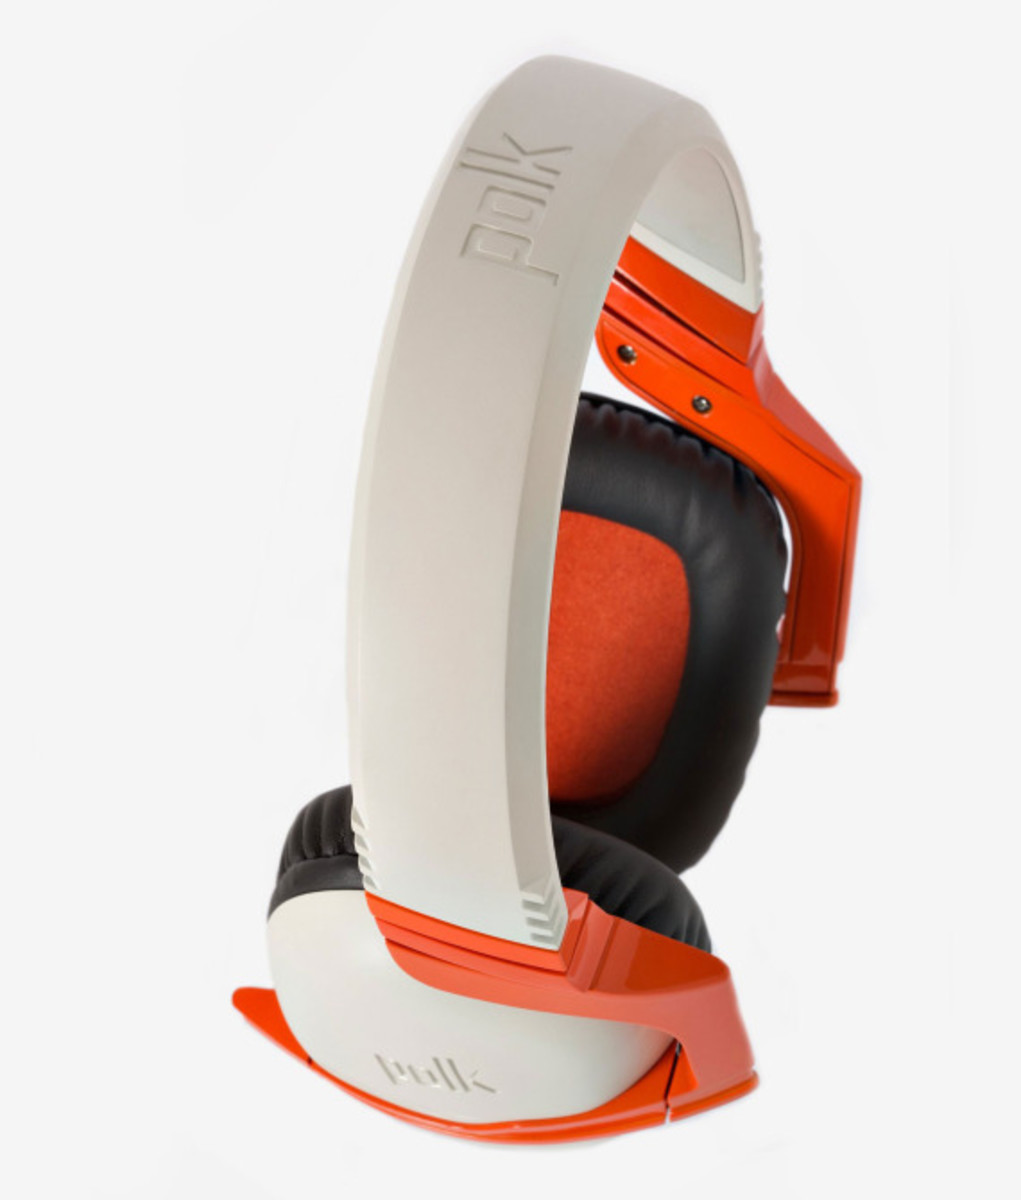 polk-striker-zx-xbox-one-gaming-headphones-01